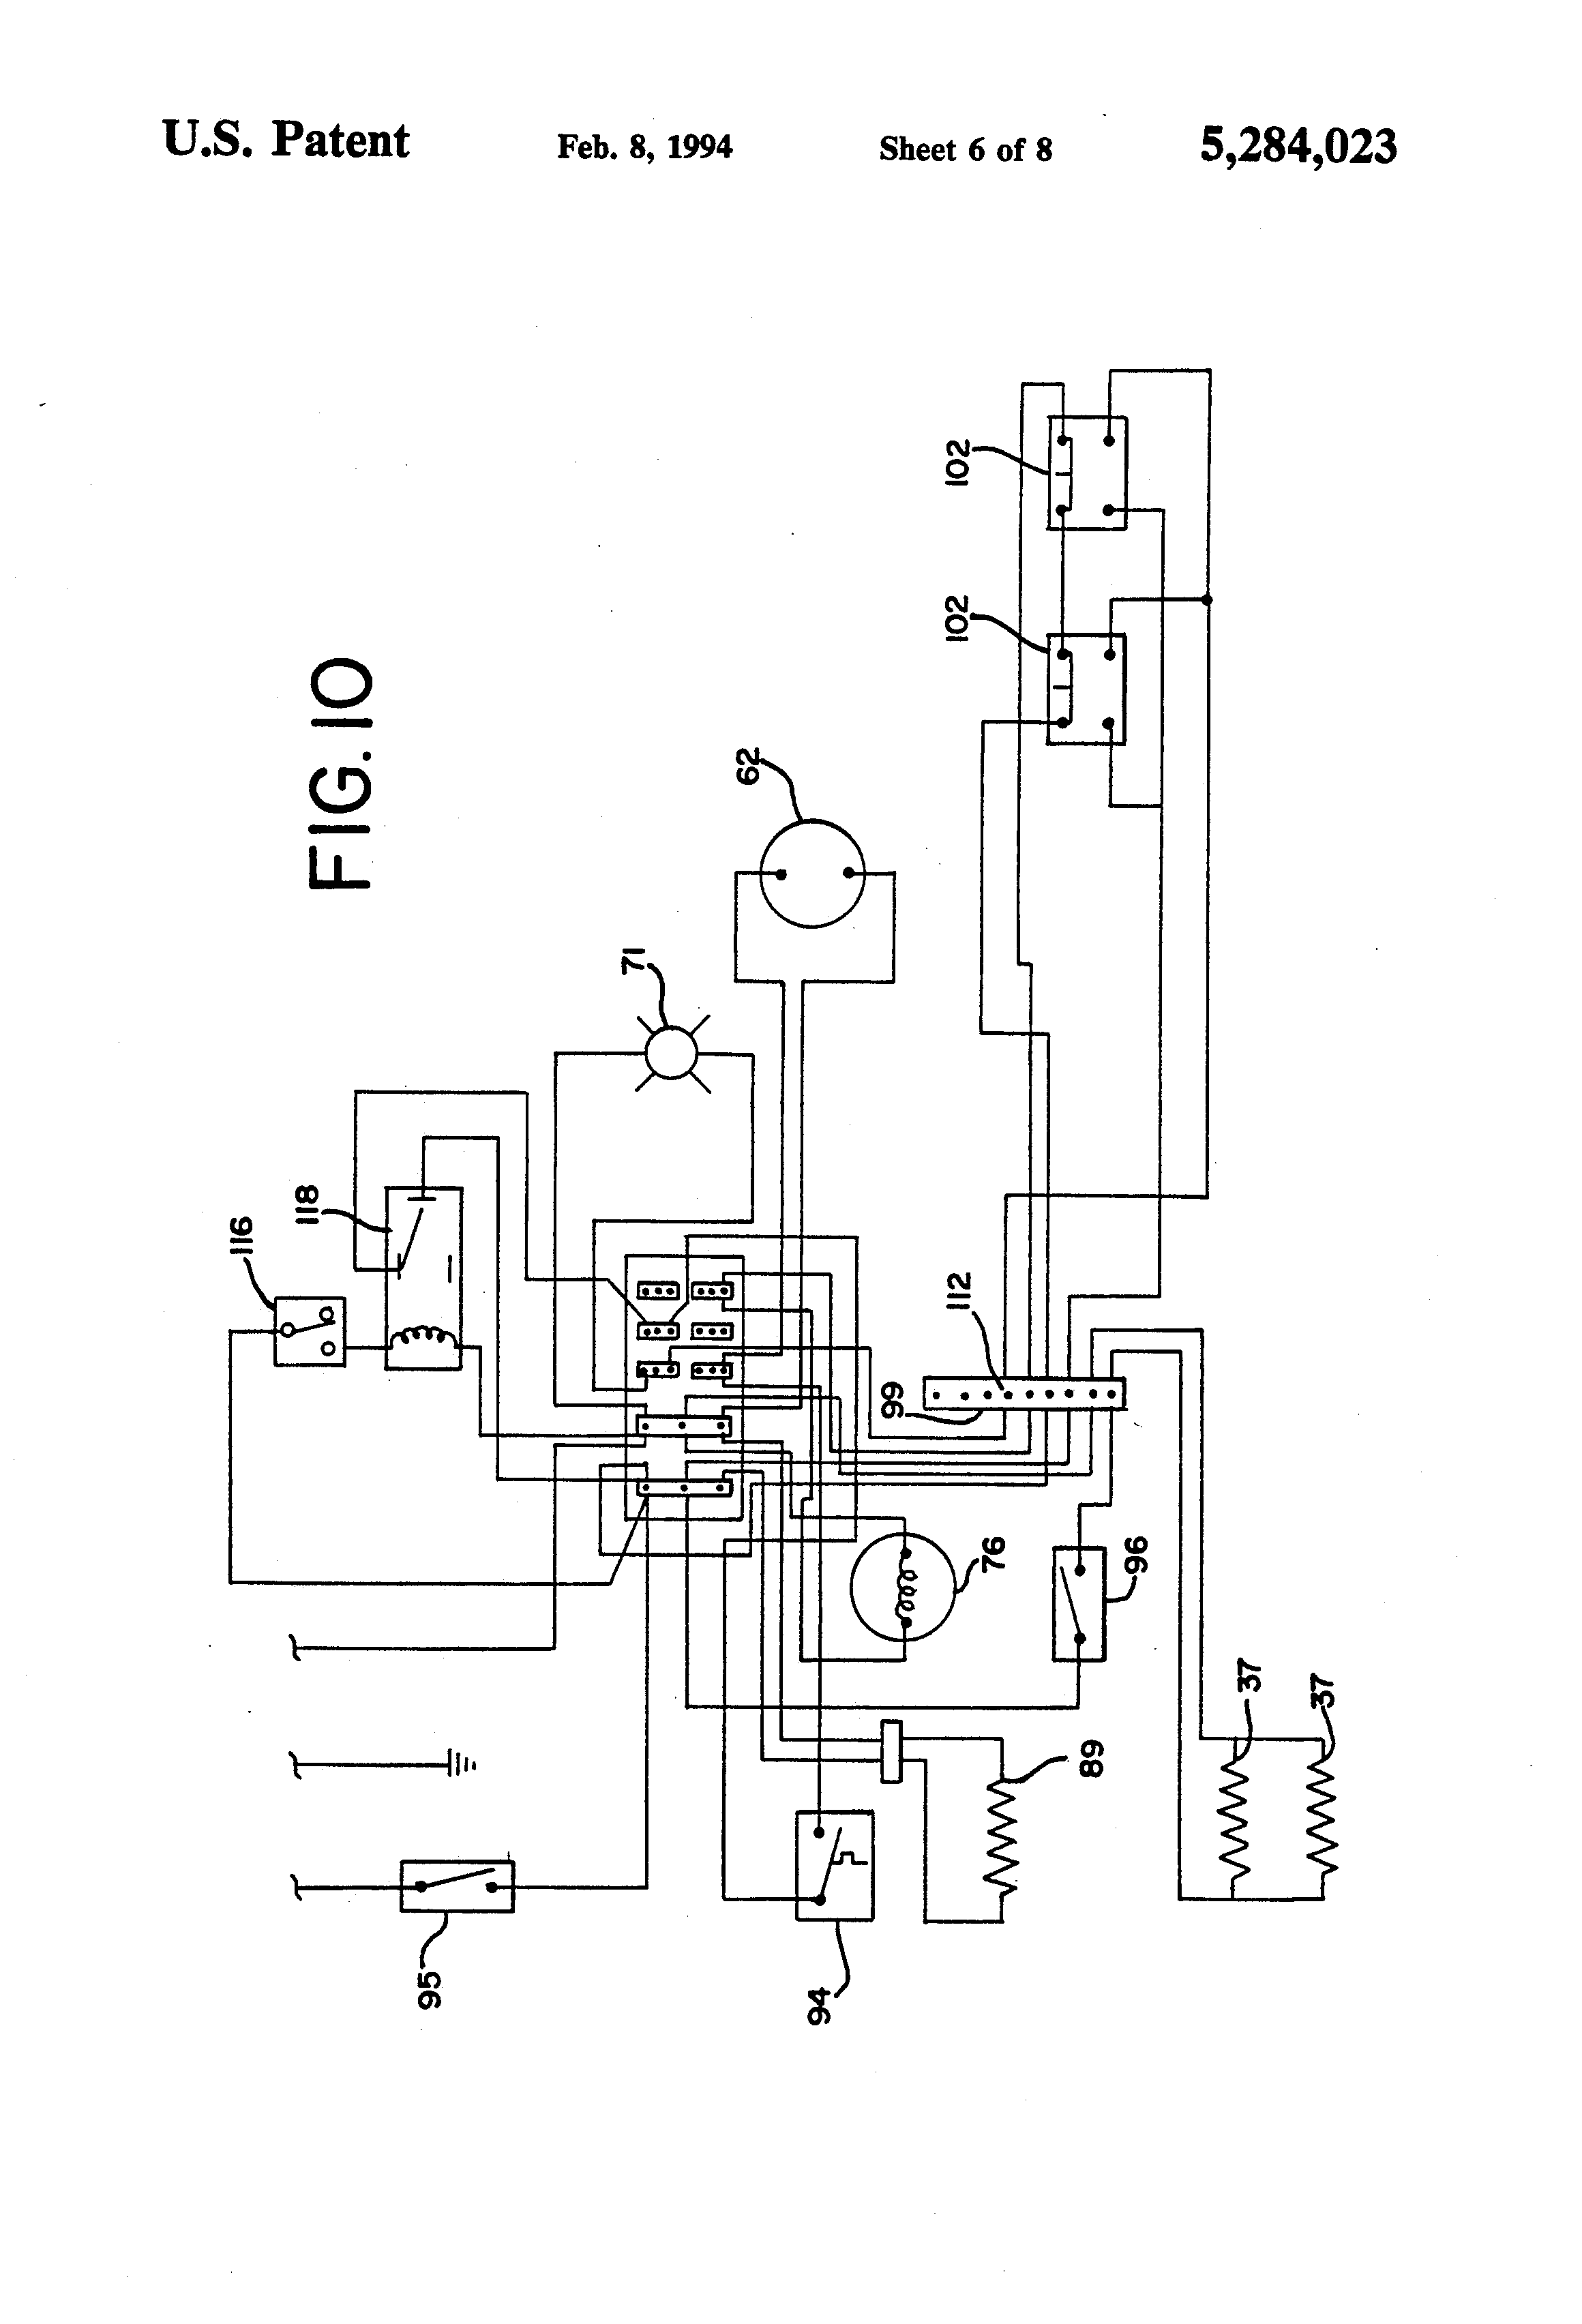 US5284023 6 bohn evaporator wiring diagram 230 460 motor wiring diagram \u2022 free rittal thermostat sk3110 wiring diagram at nearapp.co